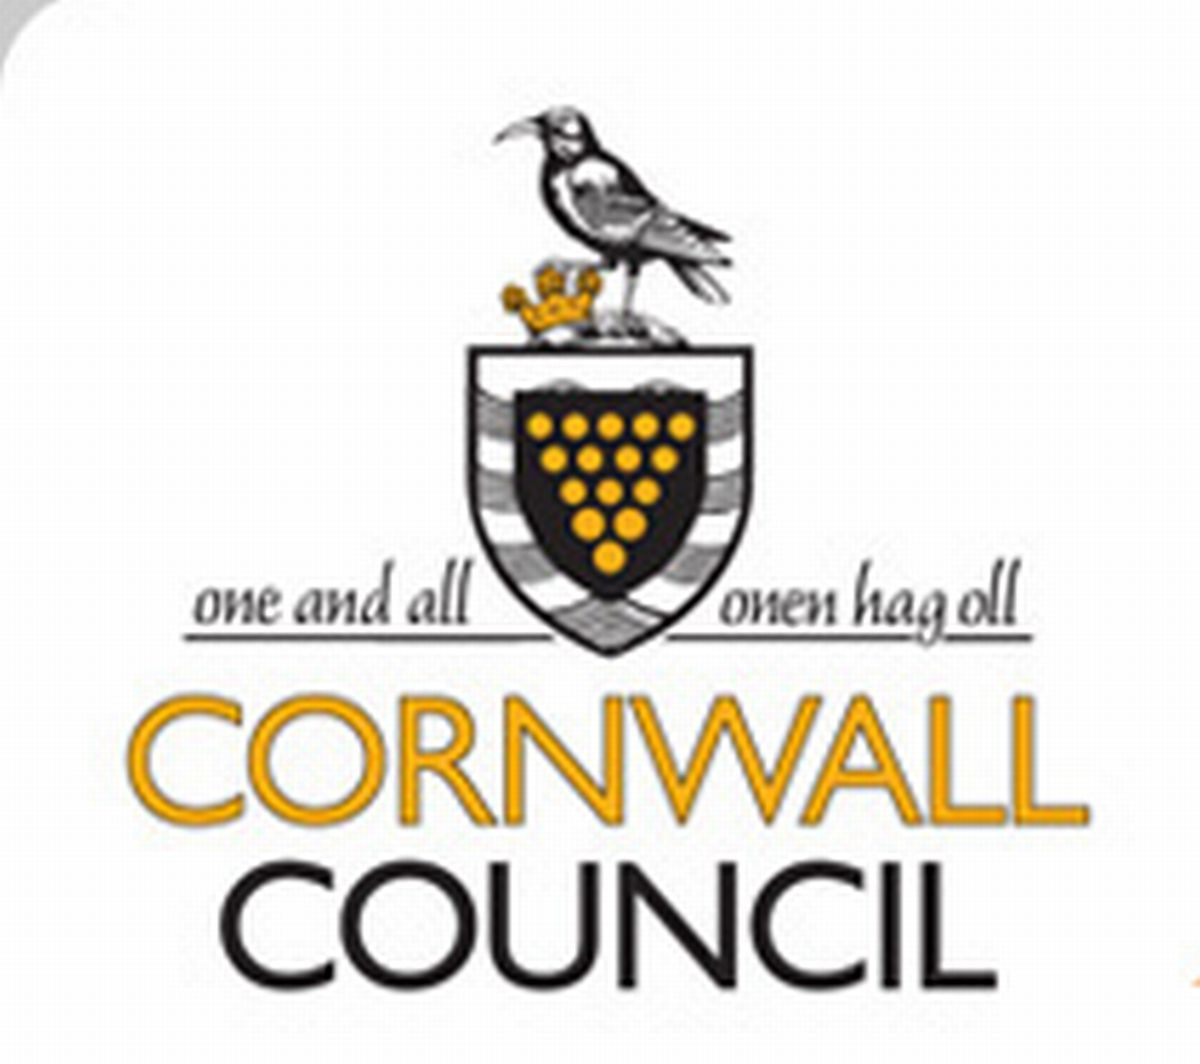 Cornwall Council.